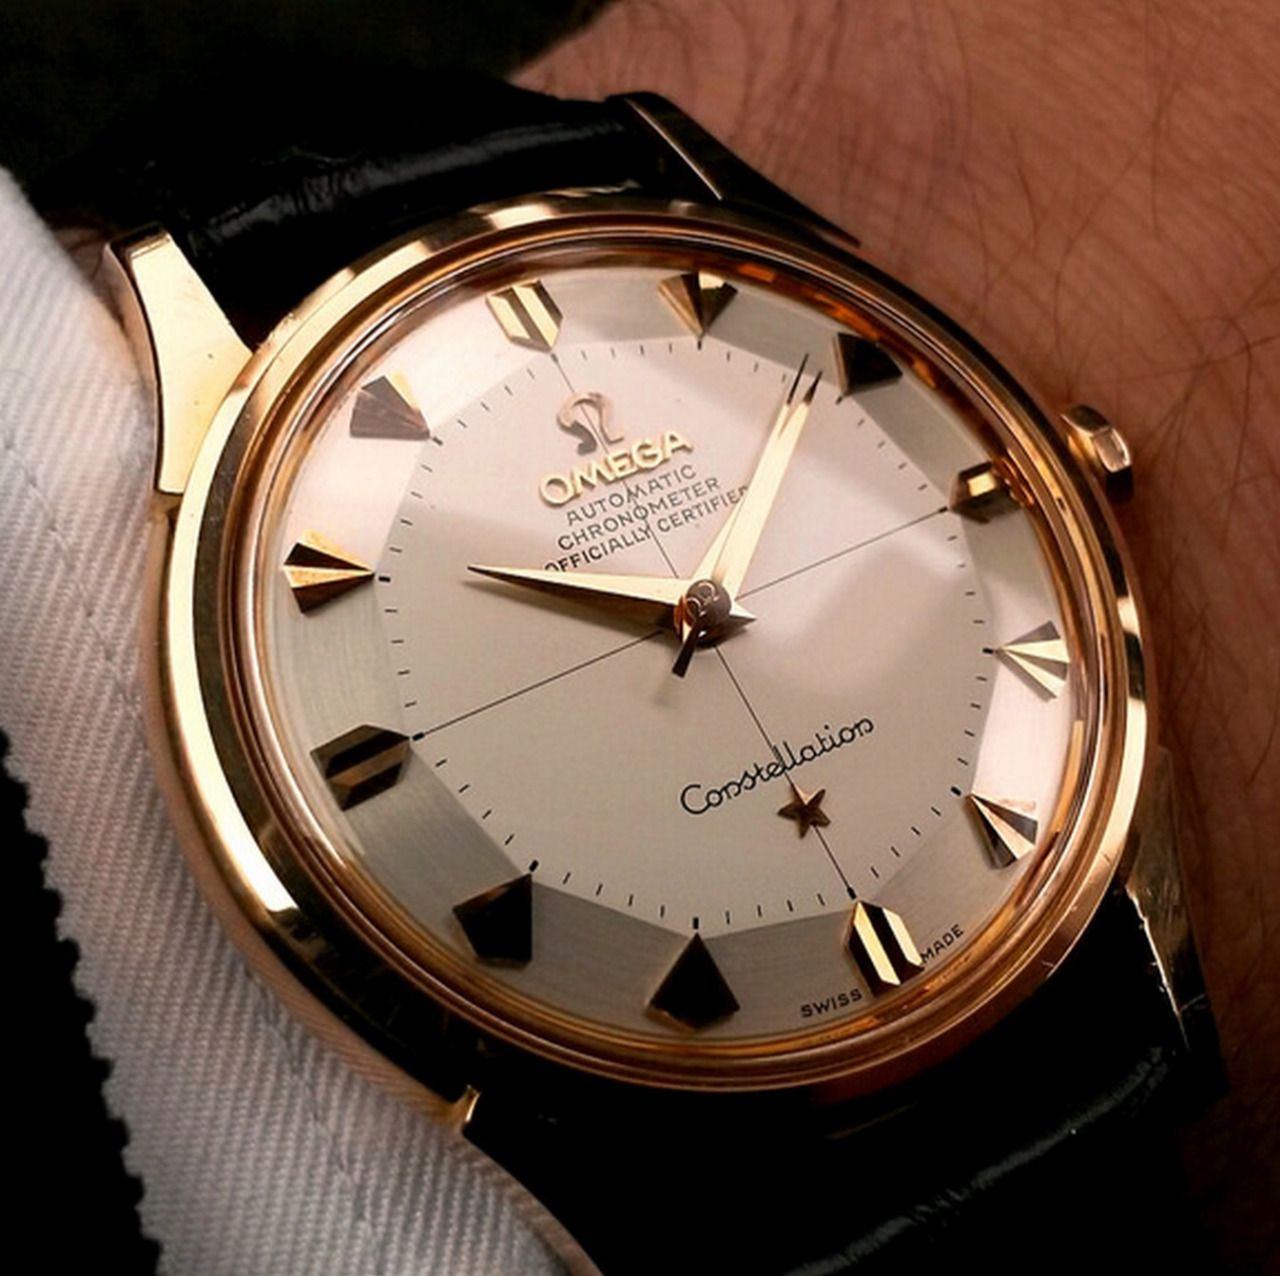 b57a0eb8848 Vintage OMEGA Constellation Piepan Chronometer In Solid Gold Circa 1950s -  http   omegaforums